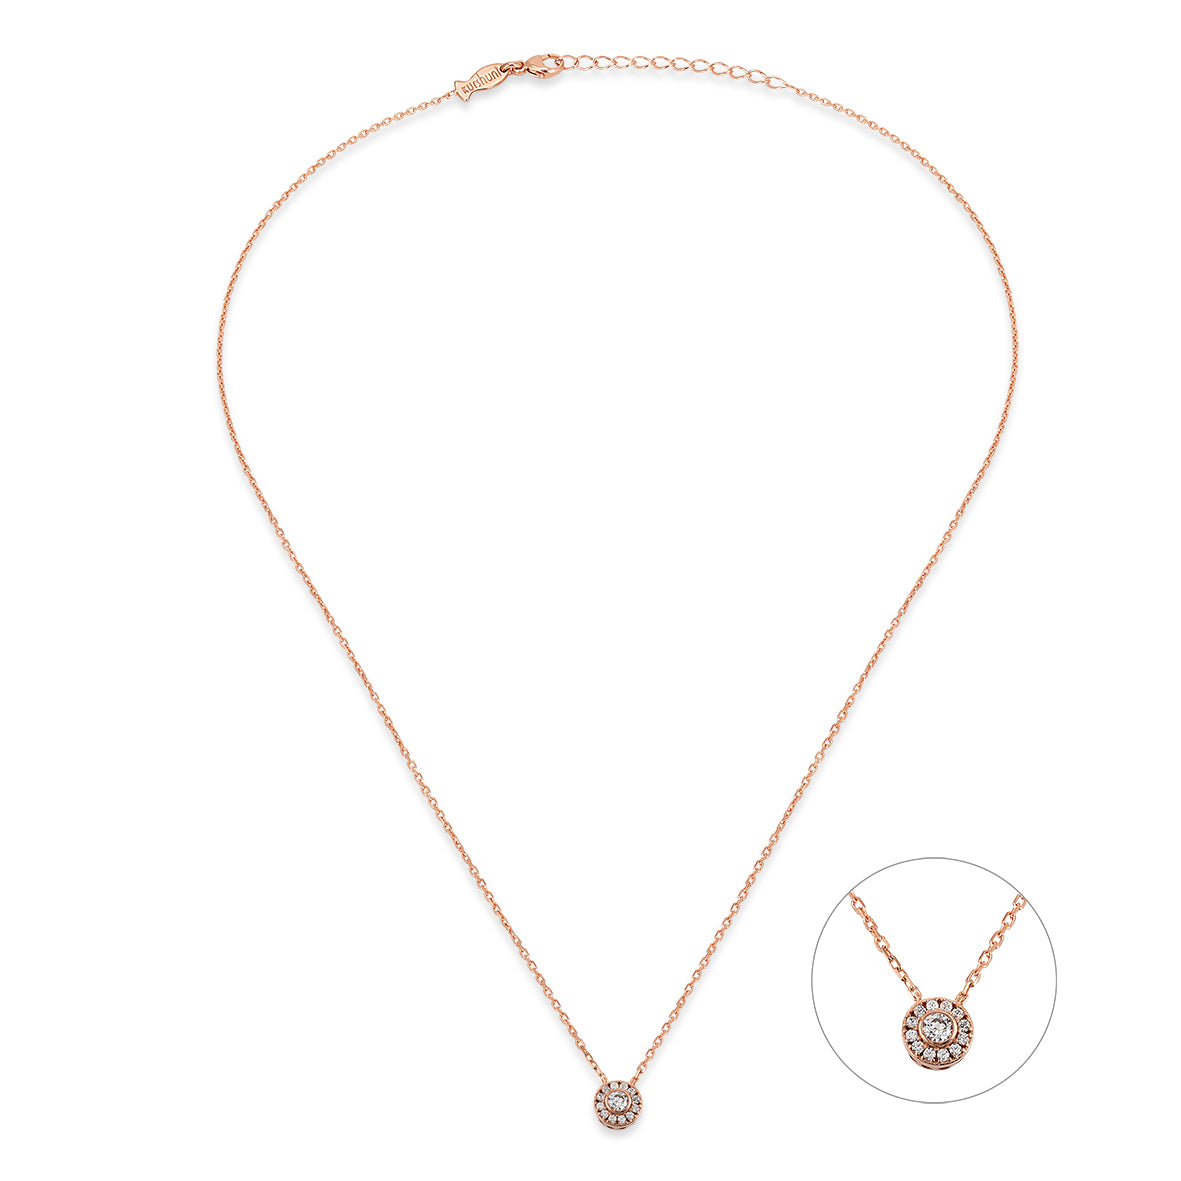 MINI ENTOURAGE NECKLACE GOLD - Wonderfuletta